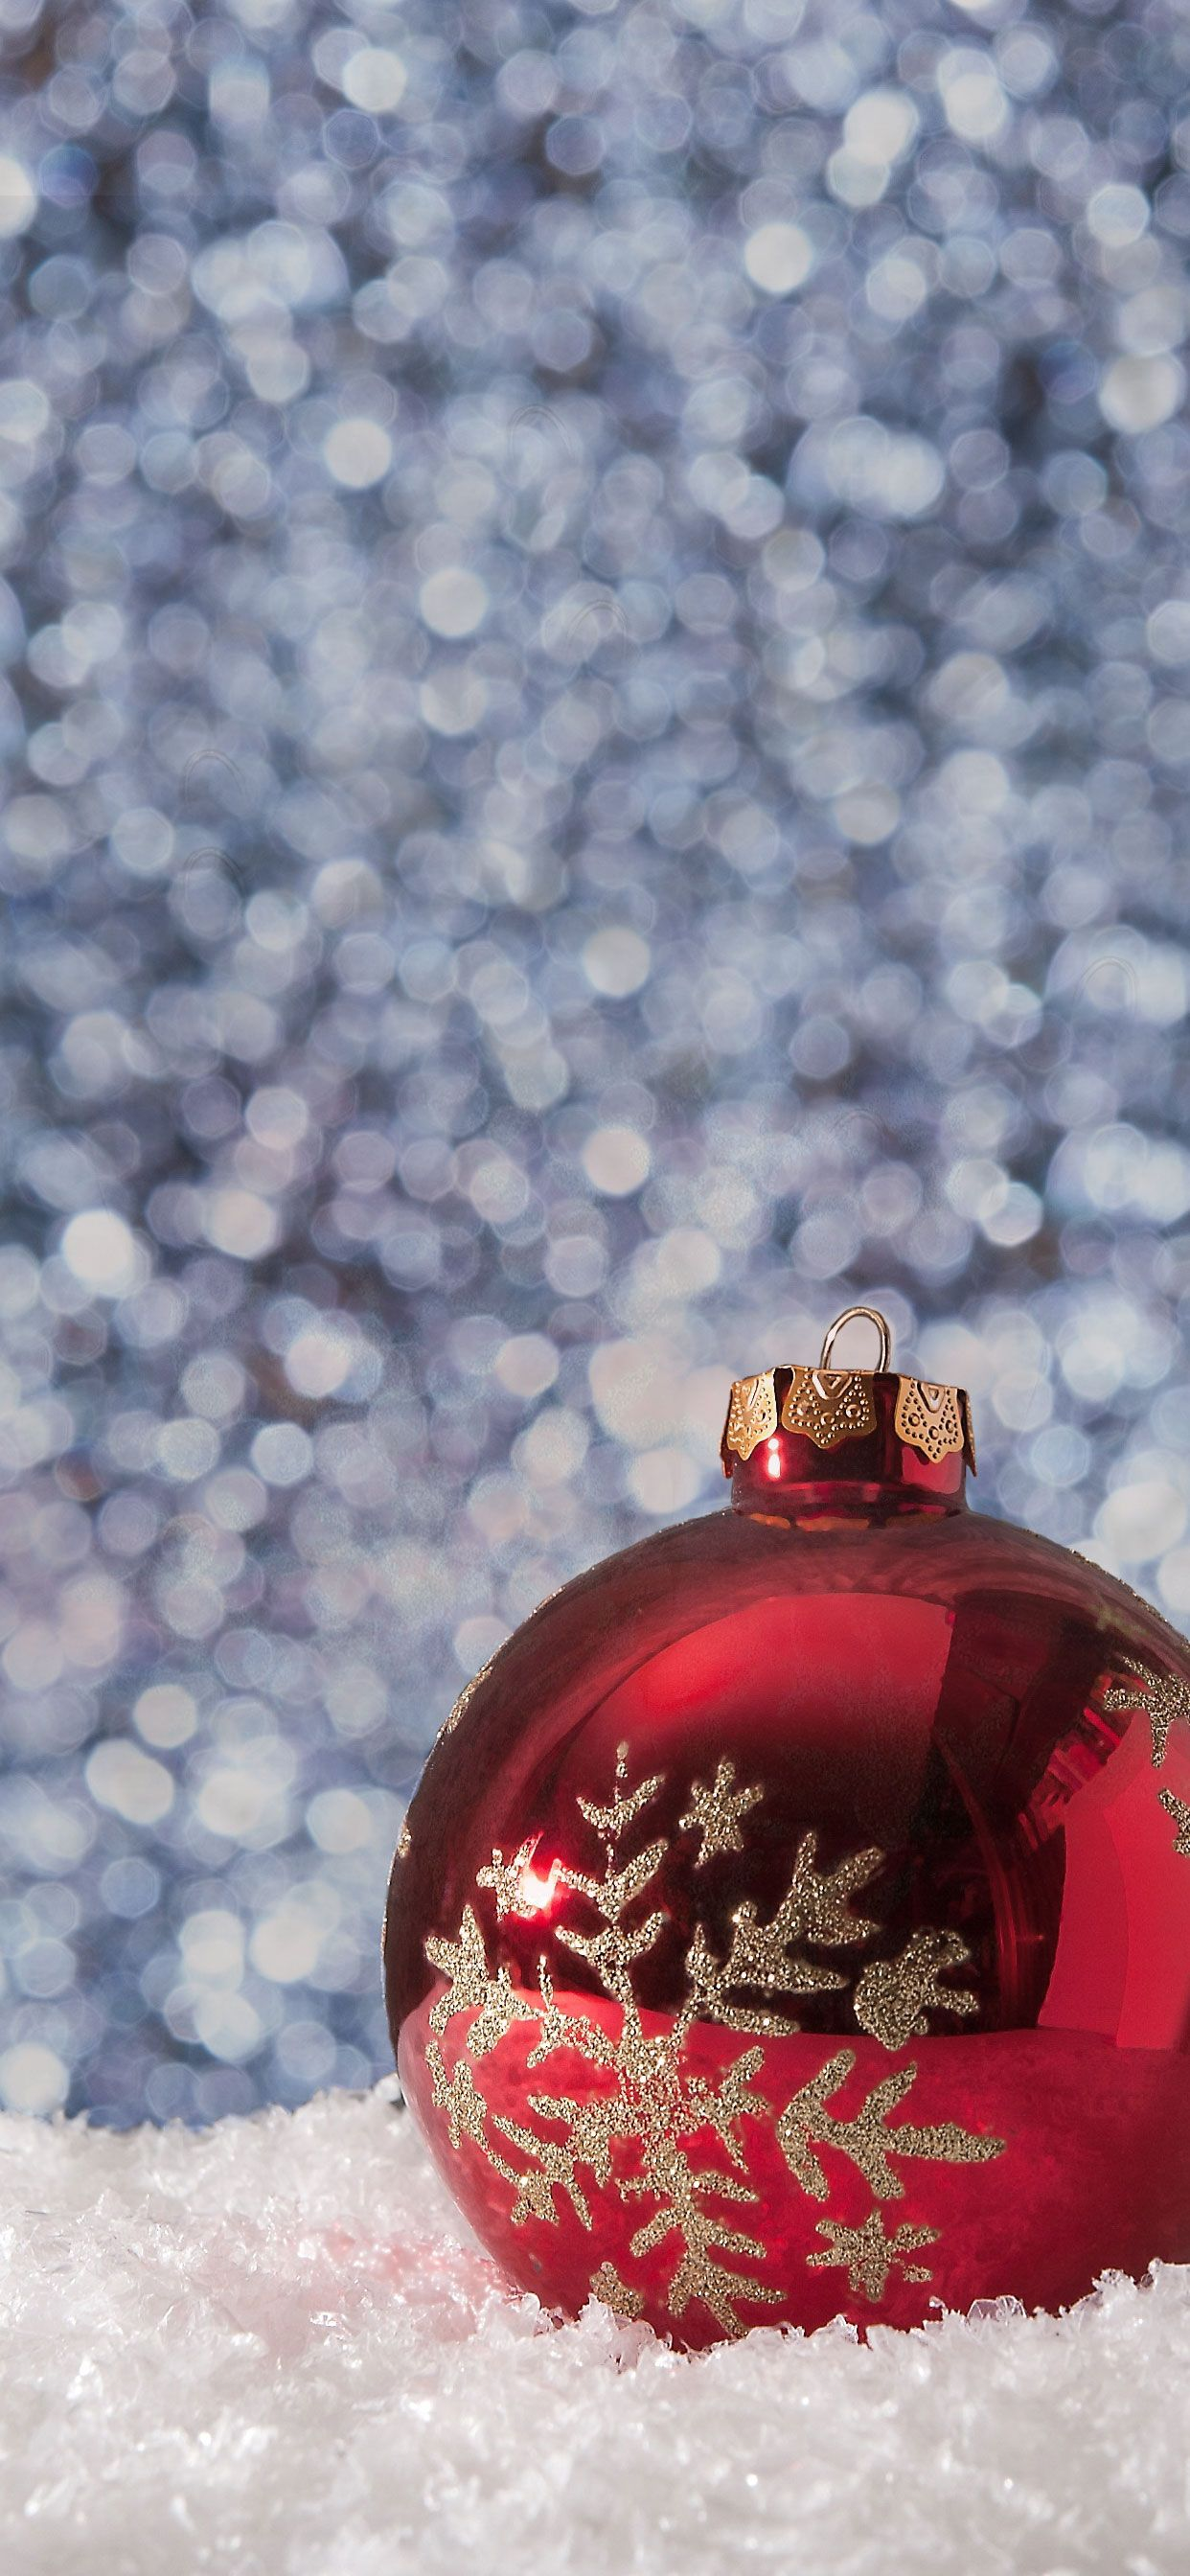 Christmas Ornaments Iphone Wallpapers Top Free Christmas